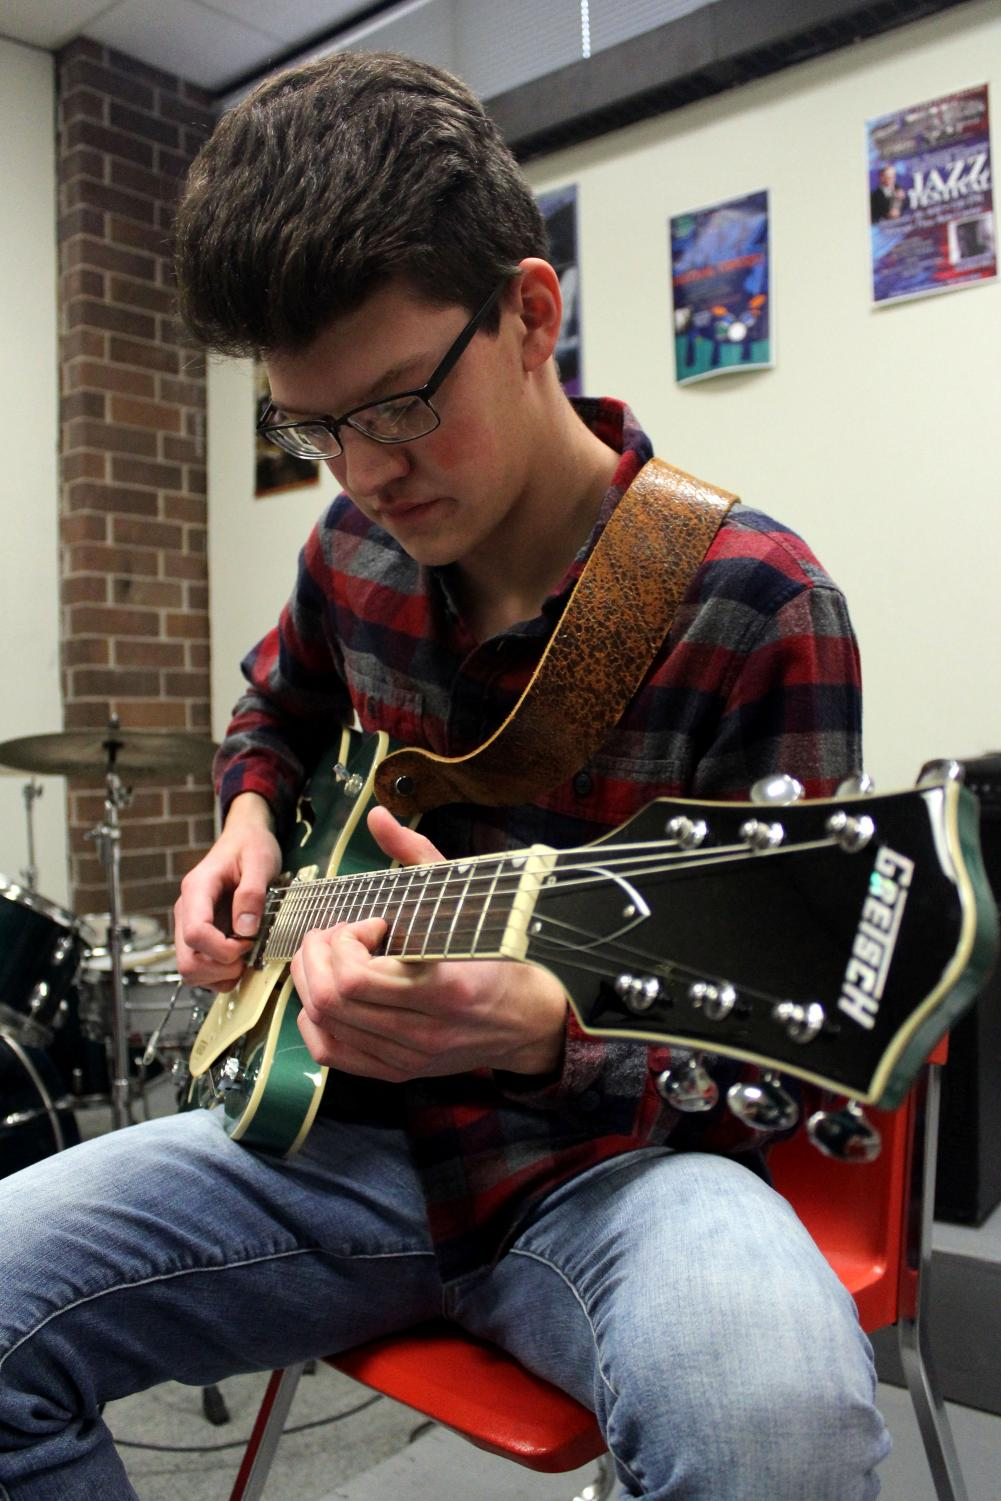 Practicing his electric guitar, senior Seth Bontrager plays tunes in the jazz room during seminar on Jan. 17. Seth practices anywhere from an hour to two hours a day. Photo Credit Emily Brandt